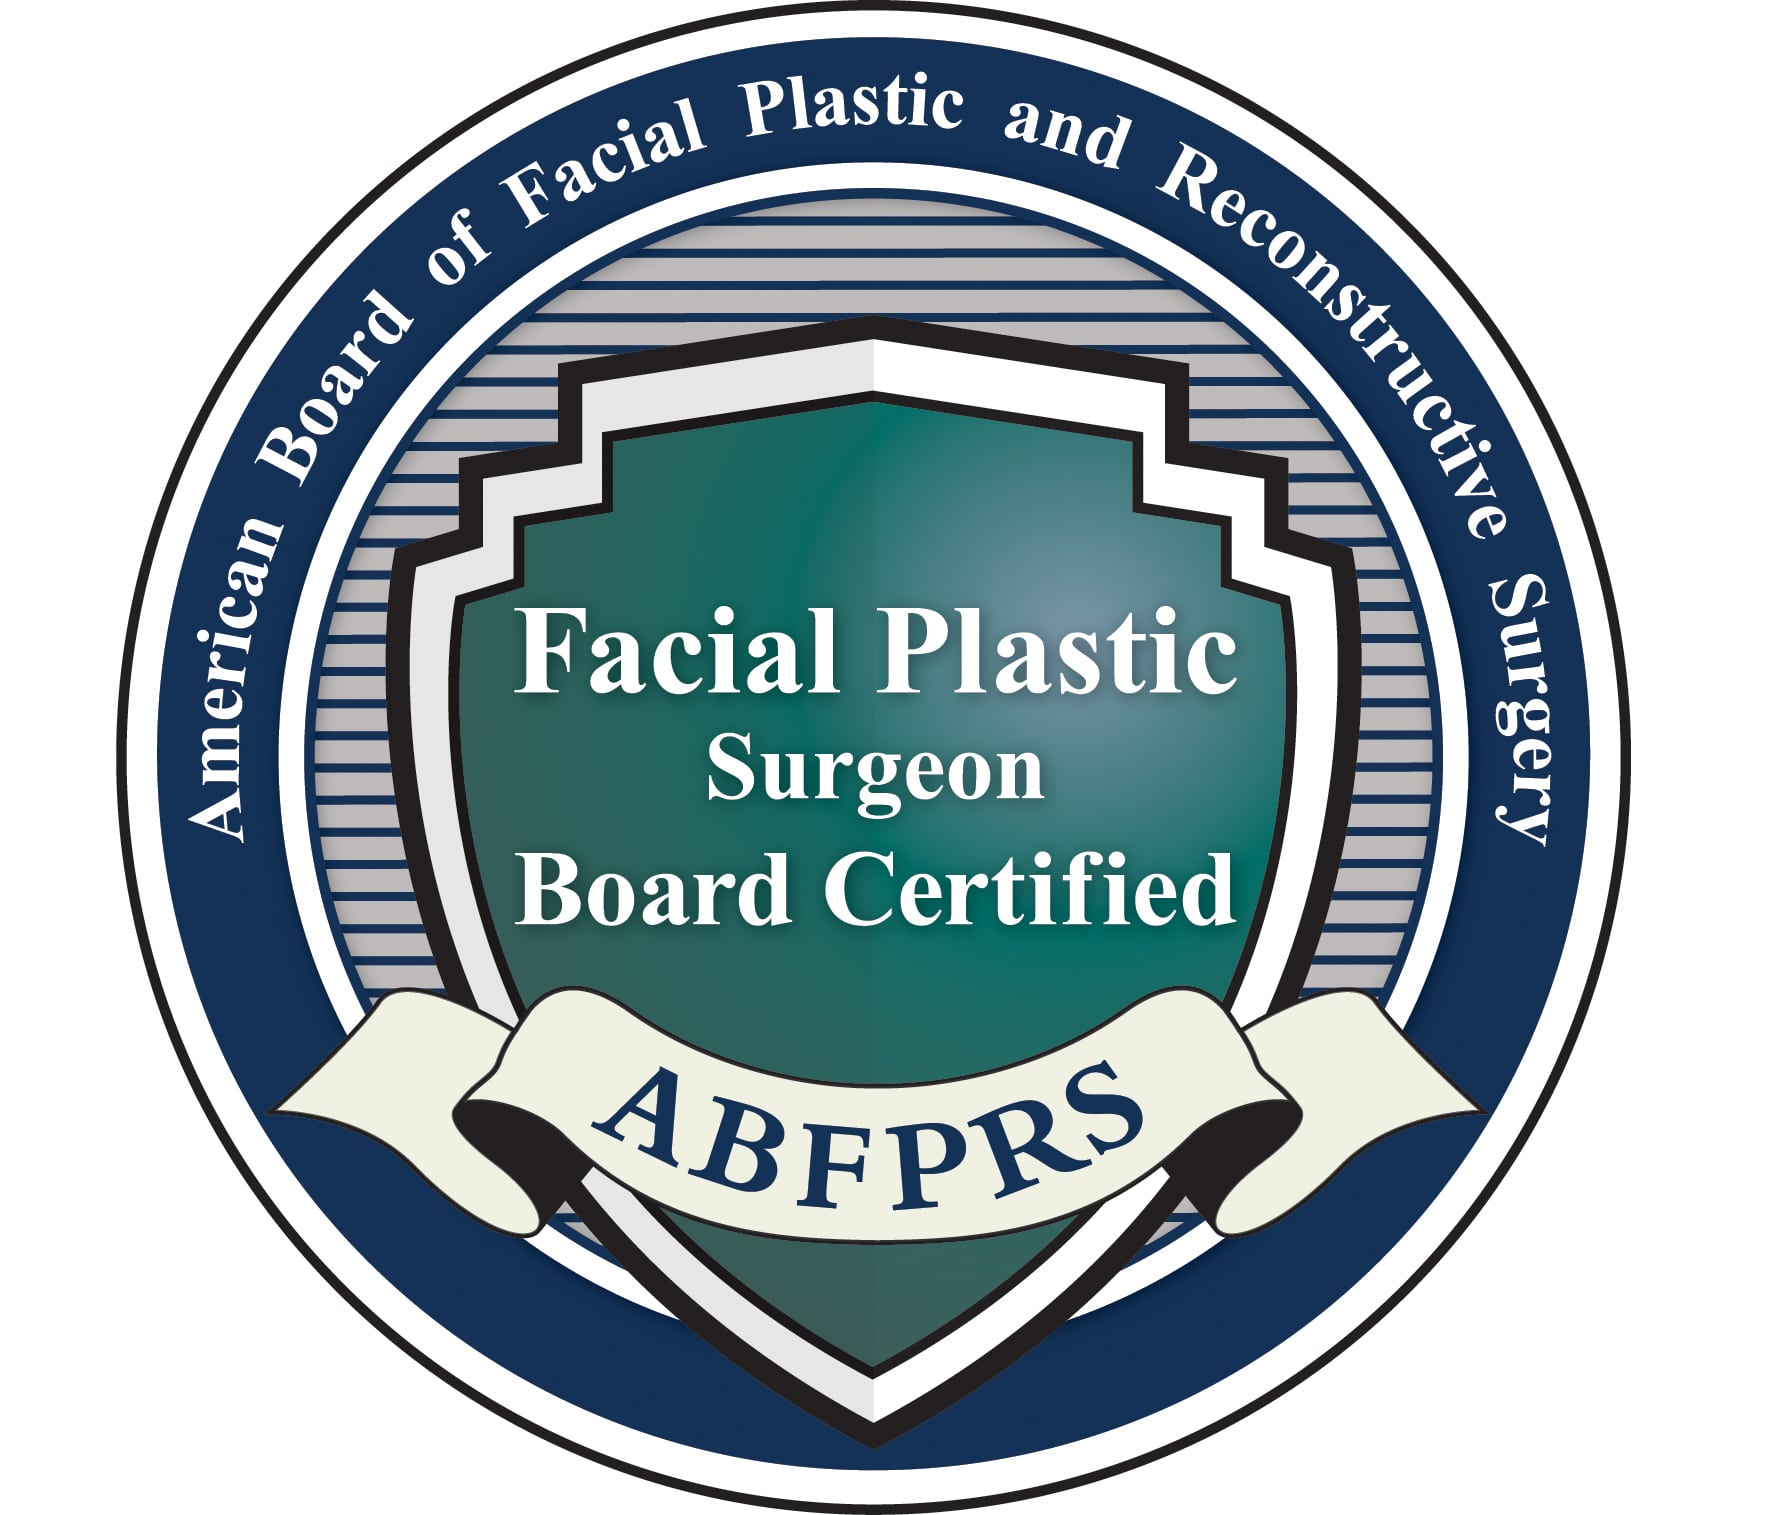 ABFPRS - Facial Plastic Surgeon Board Certified